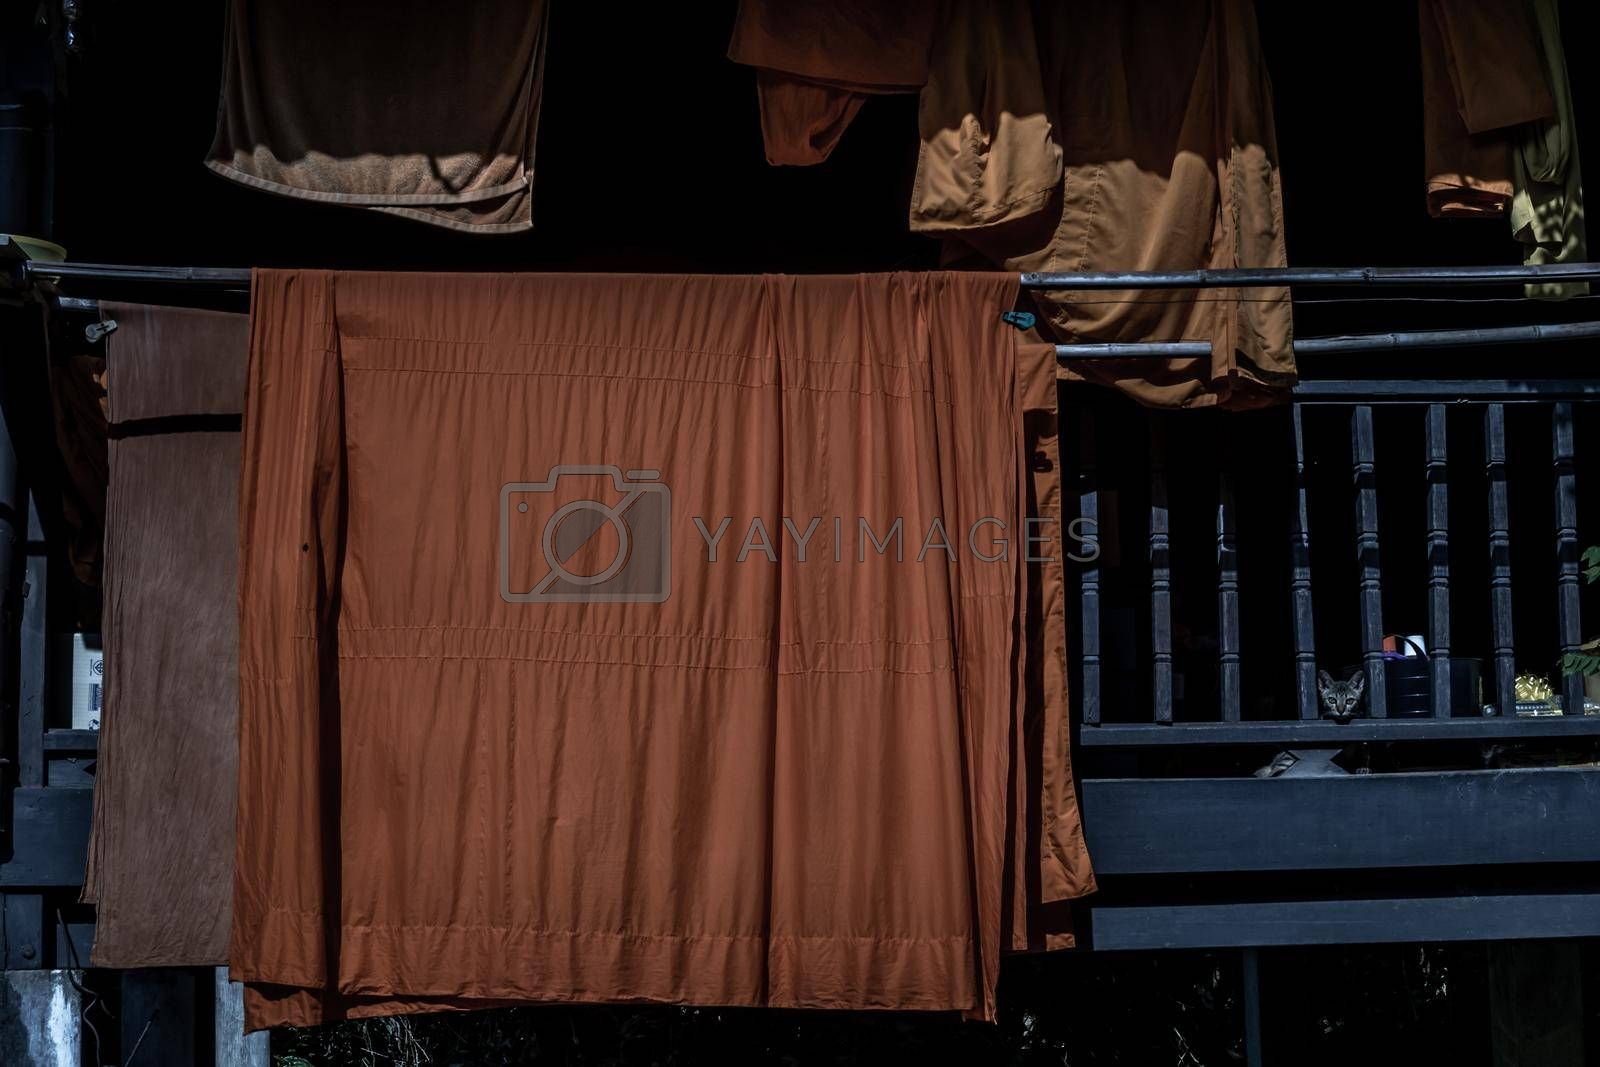 Bangkok, Thailand - 04 Dec 2019 : The vibrant orange robes worn by monks hung out to dry in the sun at Wat Chongnonsi.